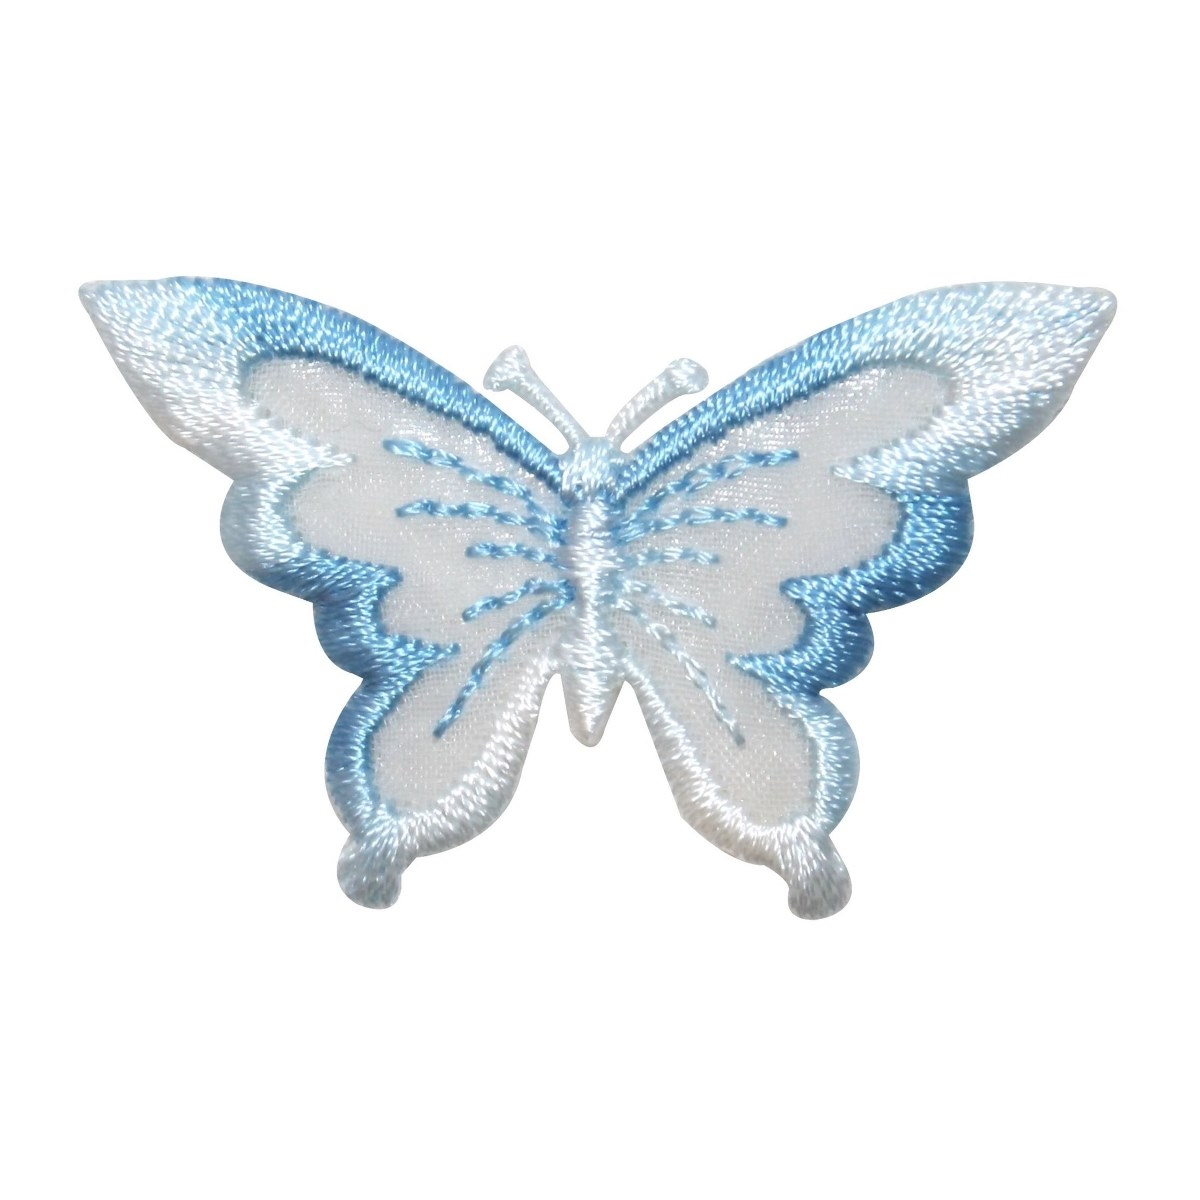 ID 2302B Lace Wings Butterfly Patch Fairy Garden Embroidered Iron On Applique